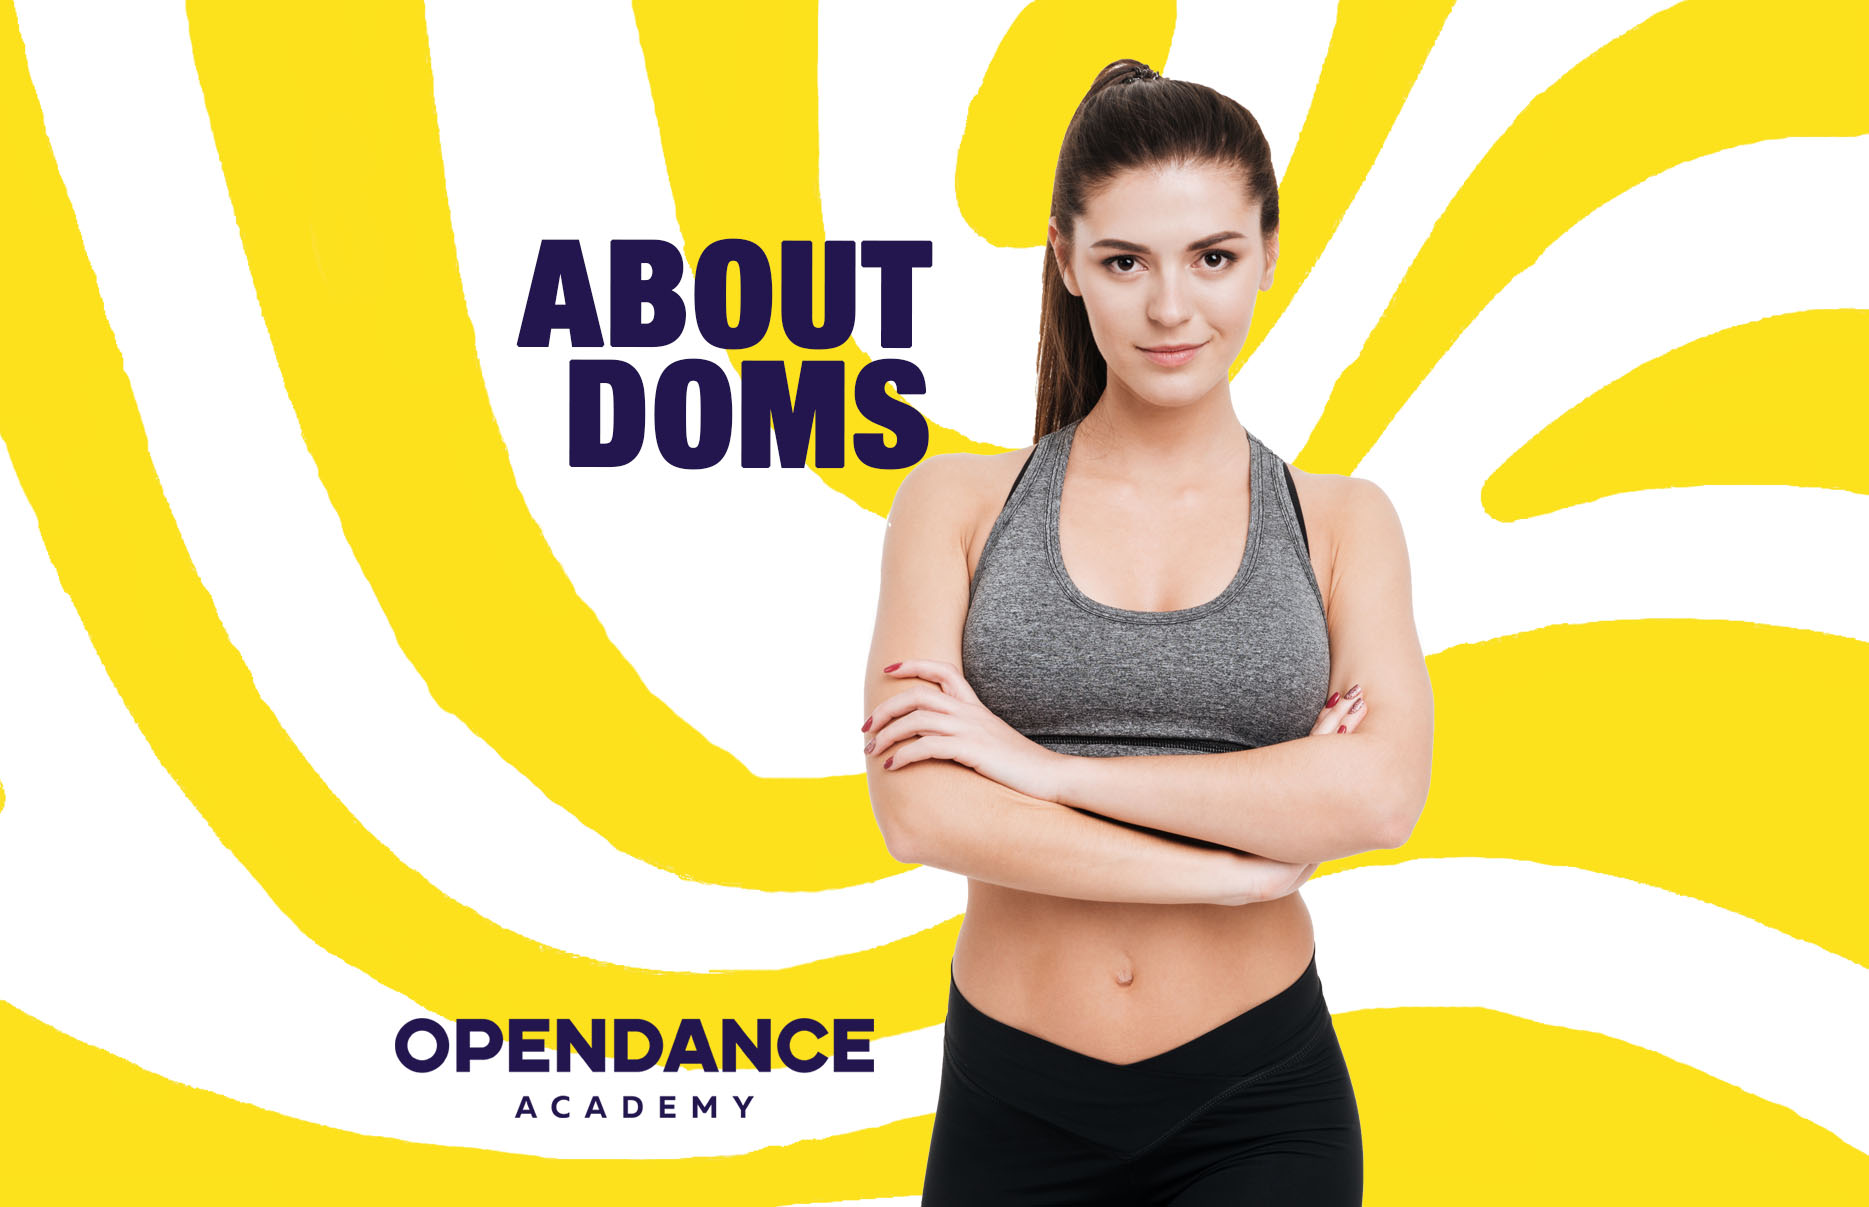 About DOMS